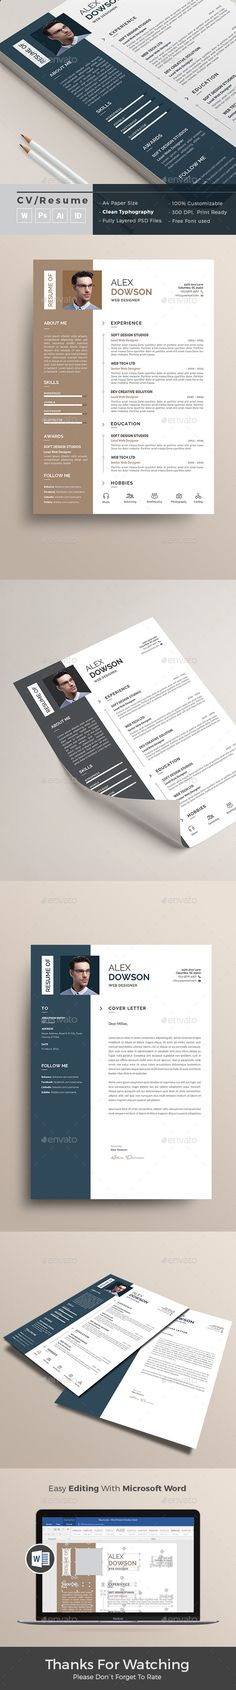 resume by themedevisers resume word template cv template with super clean and modern look clean resume template page designs are easy to use and custom - Resume Word Templates